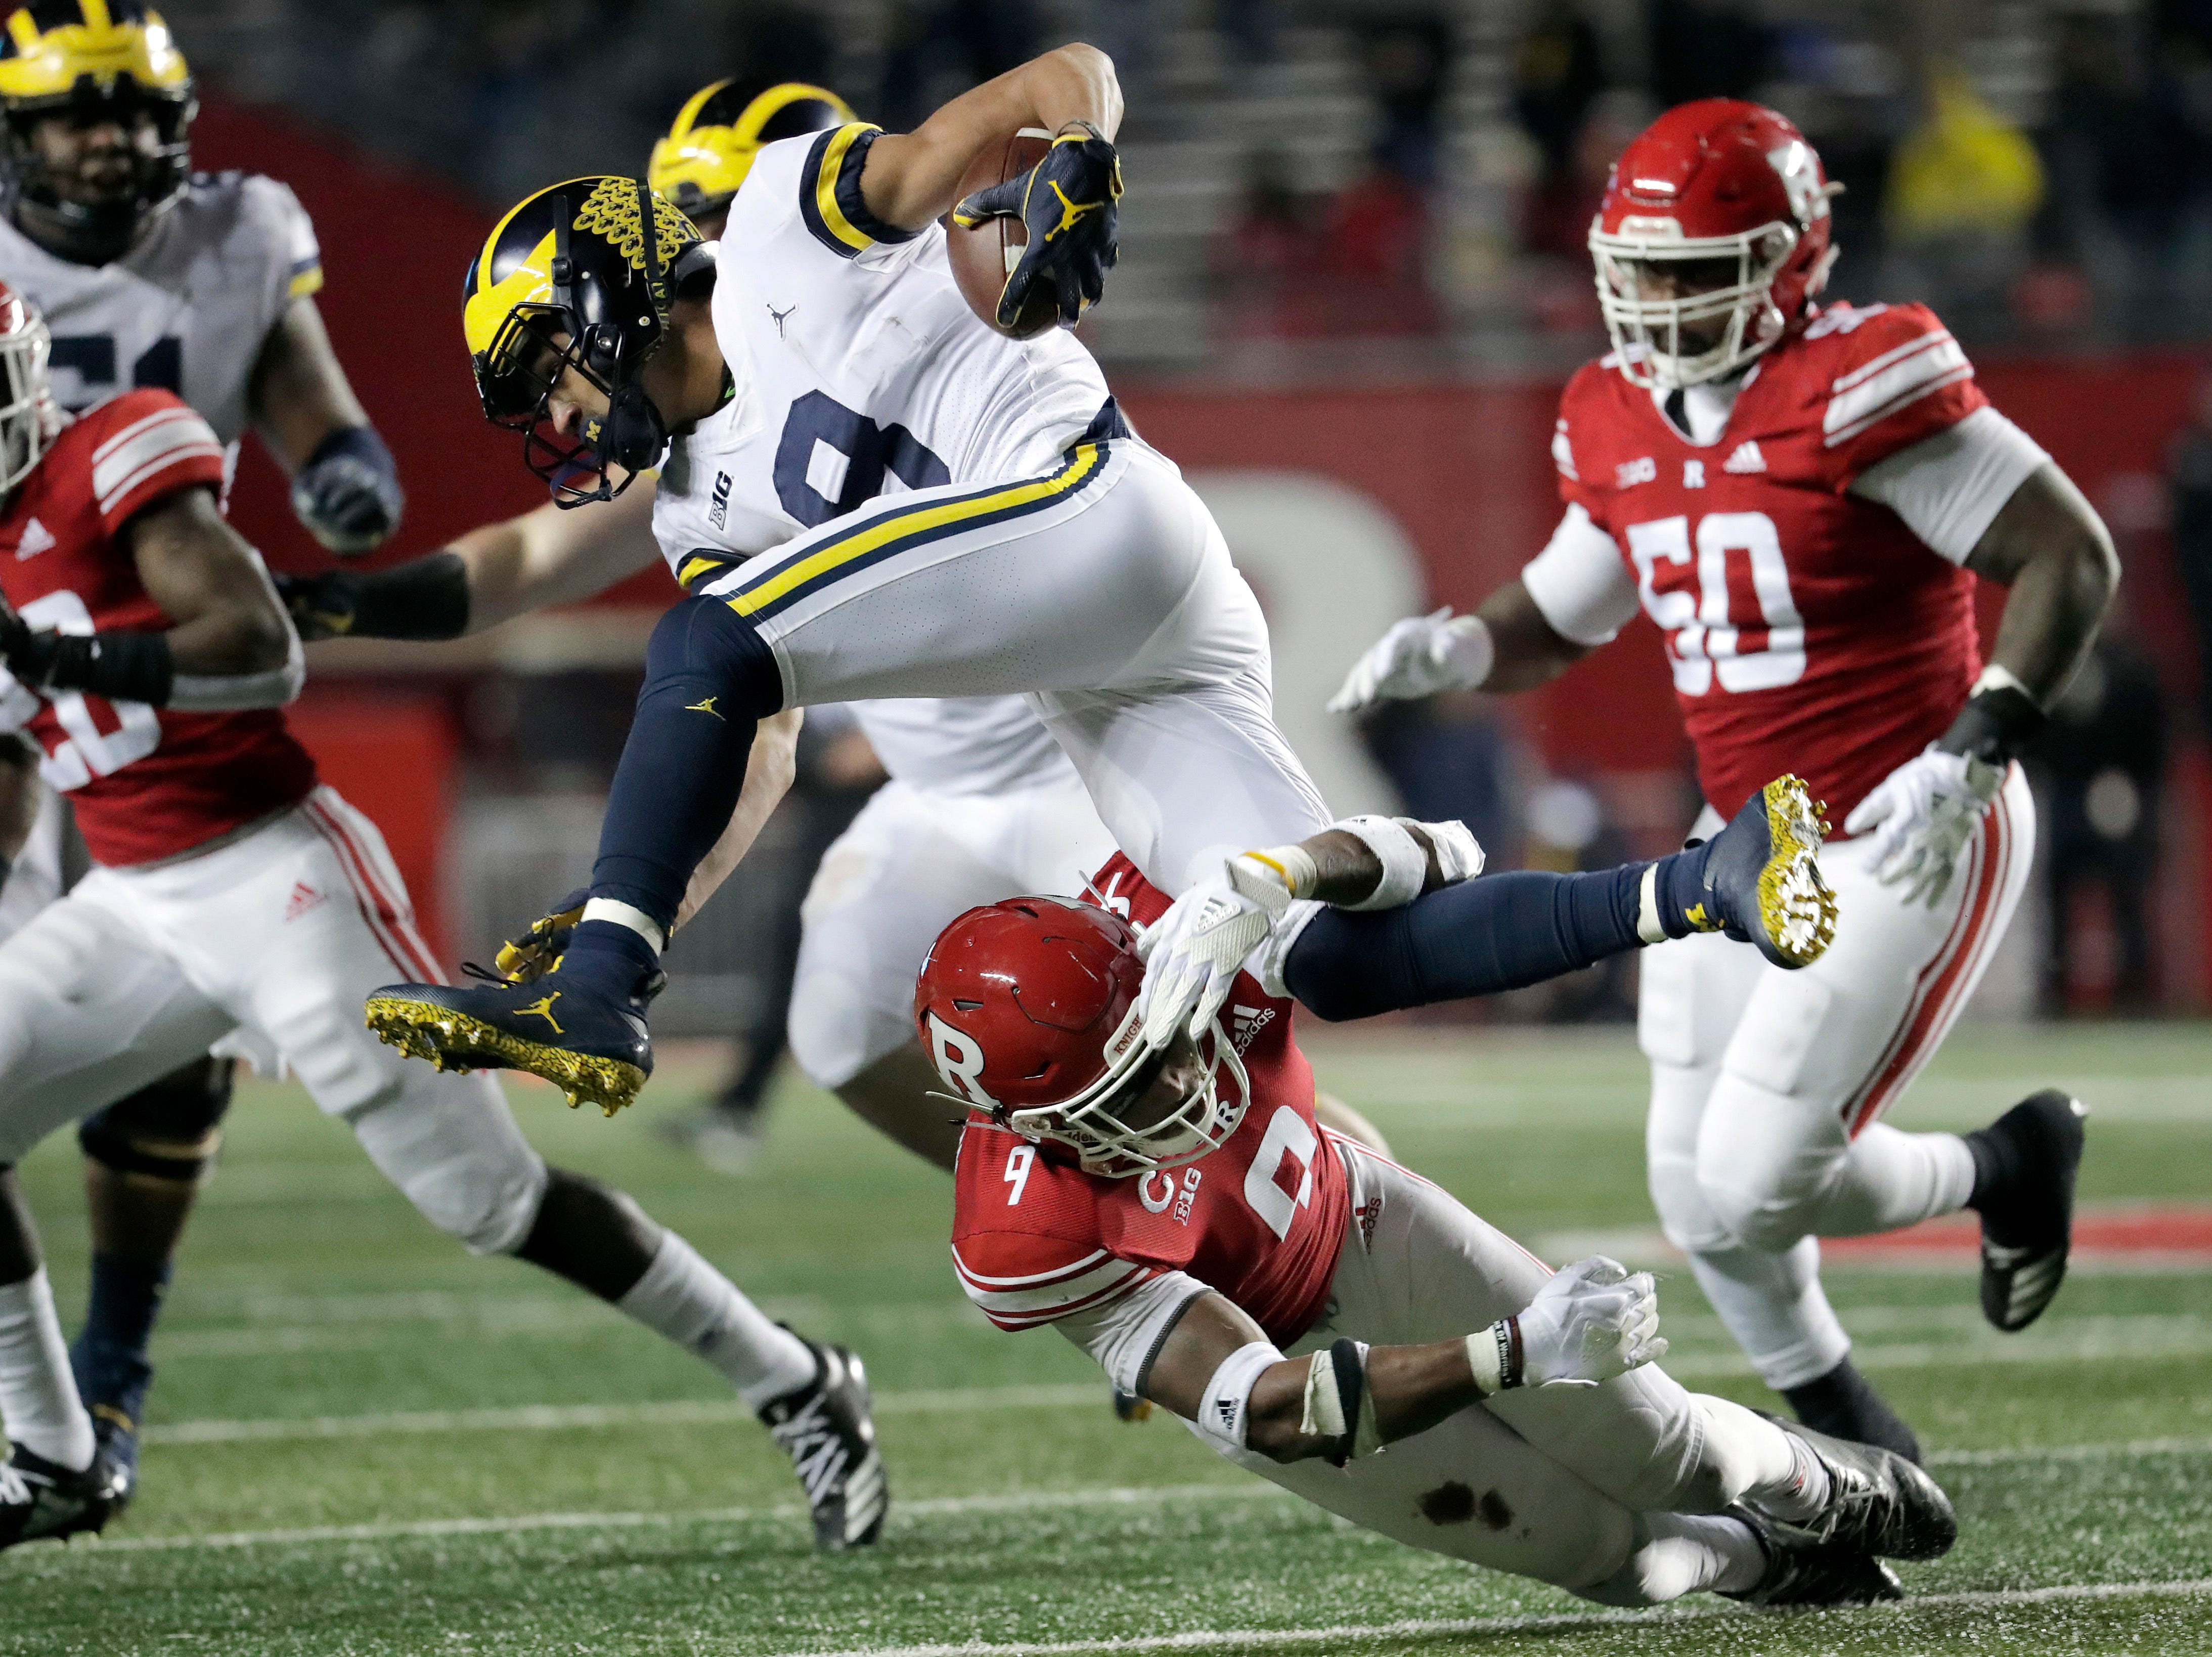 Michigan wide receiver Ronnie Bell, top, tries to leap over the tackle of Rutgers defensive back Saquan Hampton (9).